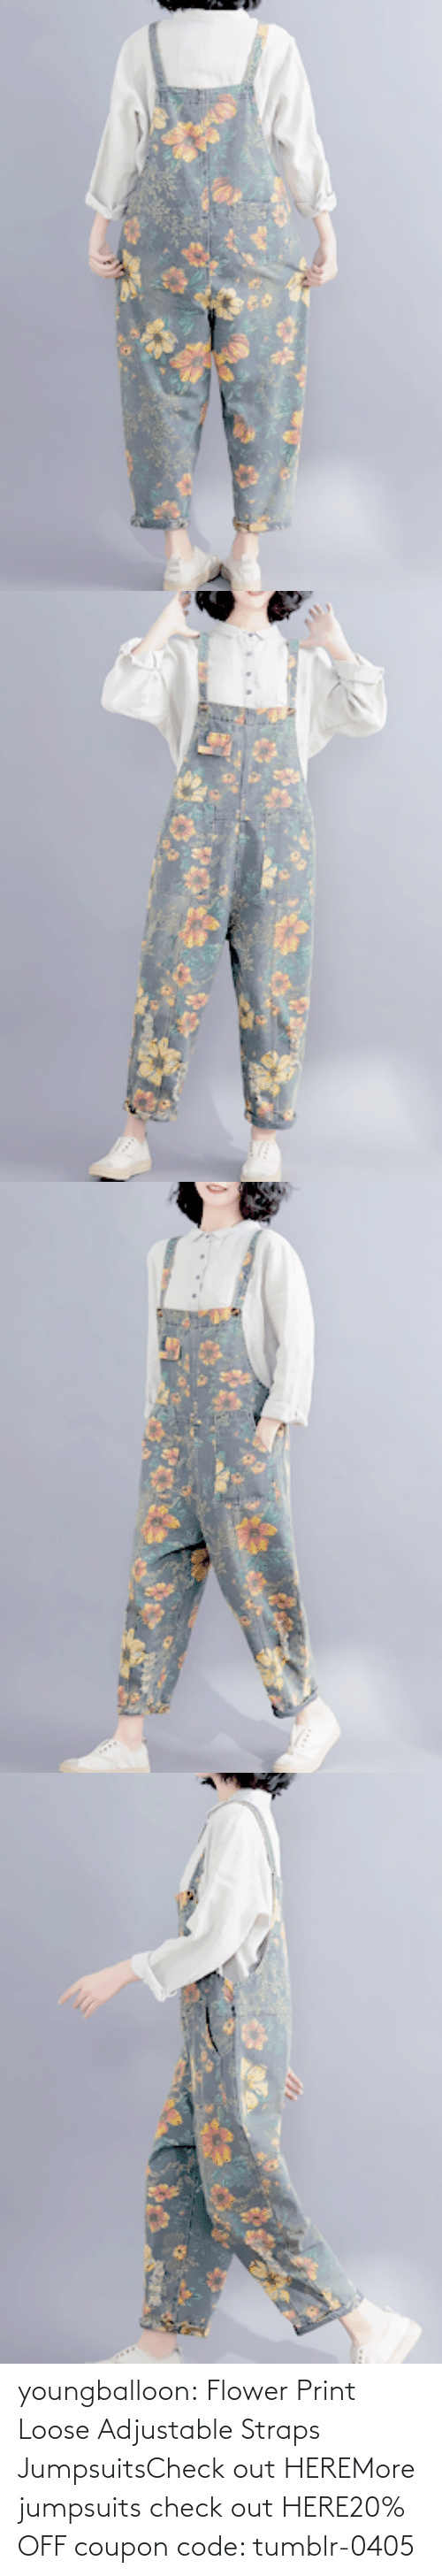 Tumblr, Blog, and Flower: youngballoon:  Flower Print Loose Adjustable Straps JumpsuitsCheck out HEREMore jumpsuits check out HERE20% OFF coupon code: tumblr-0405